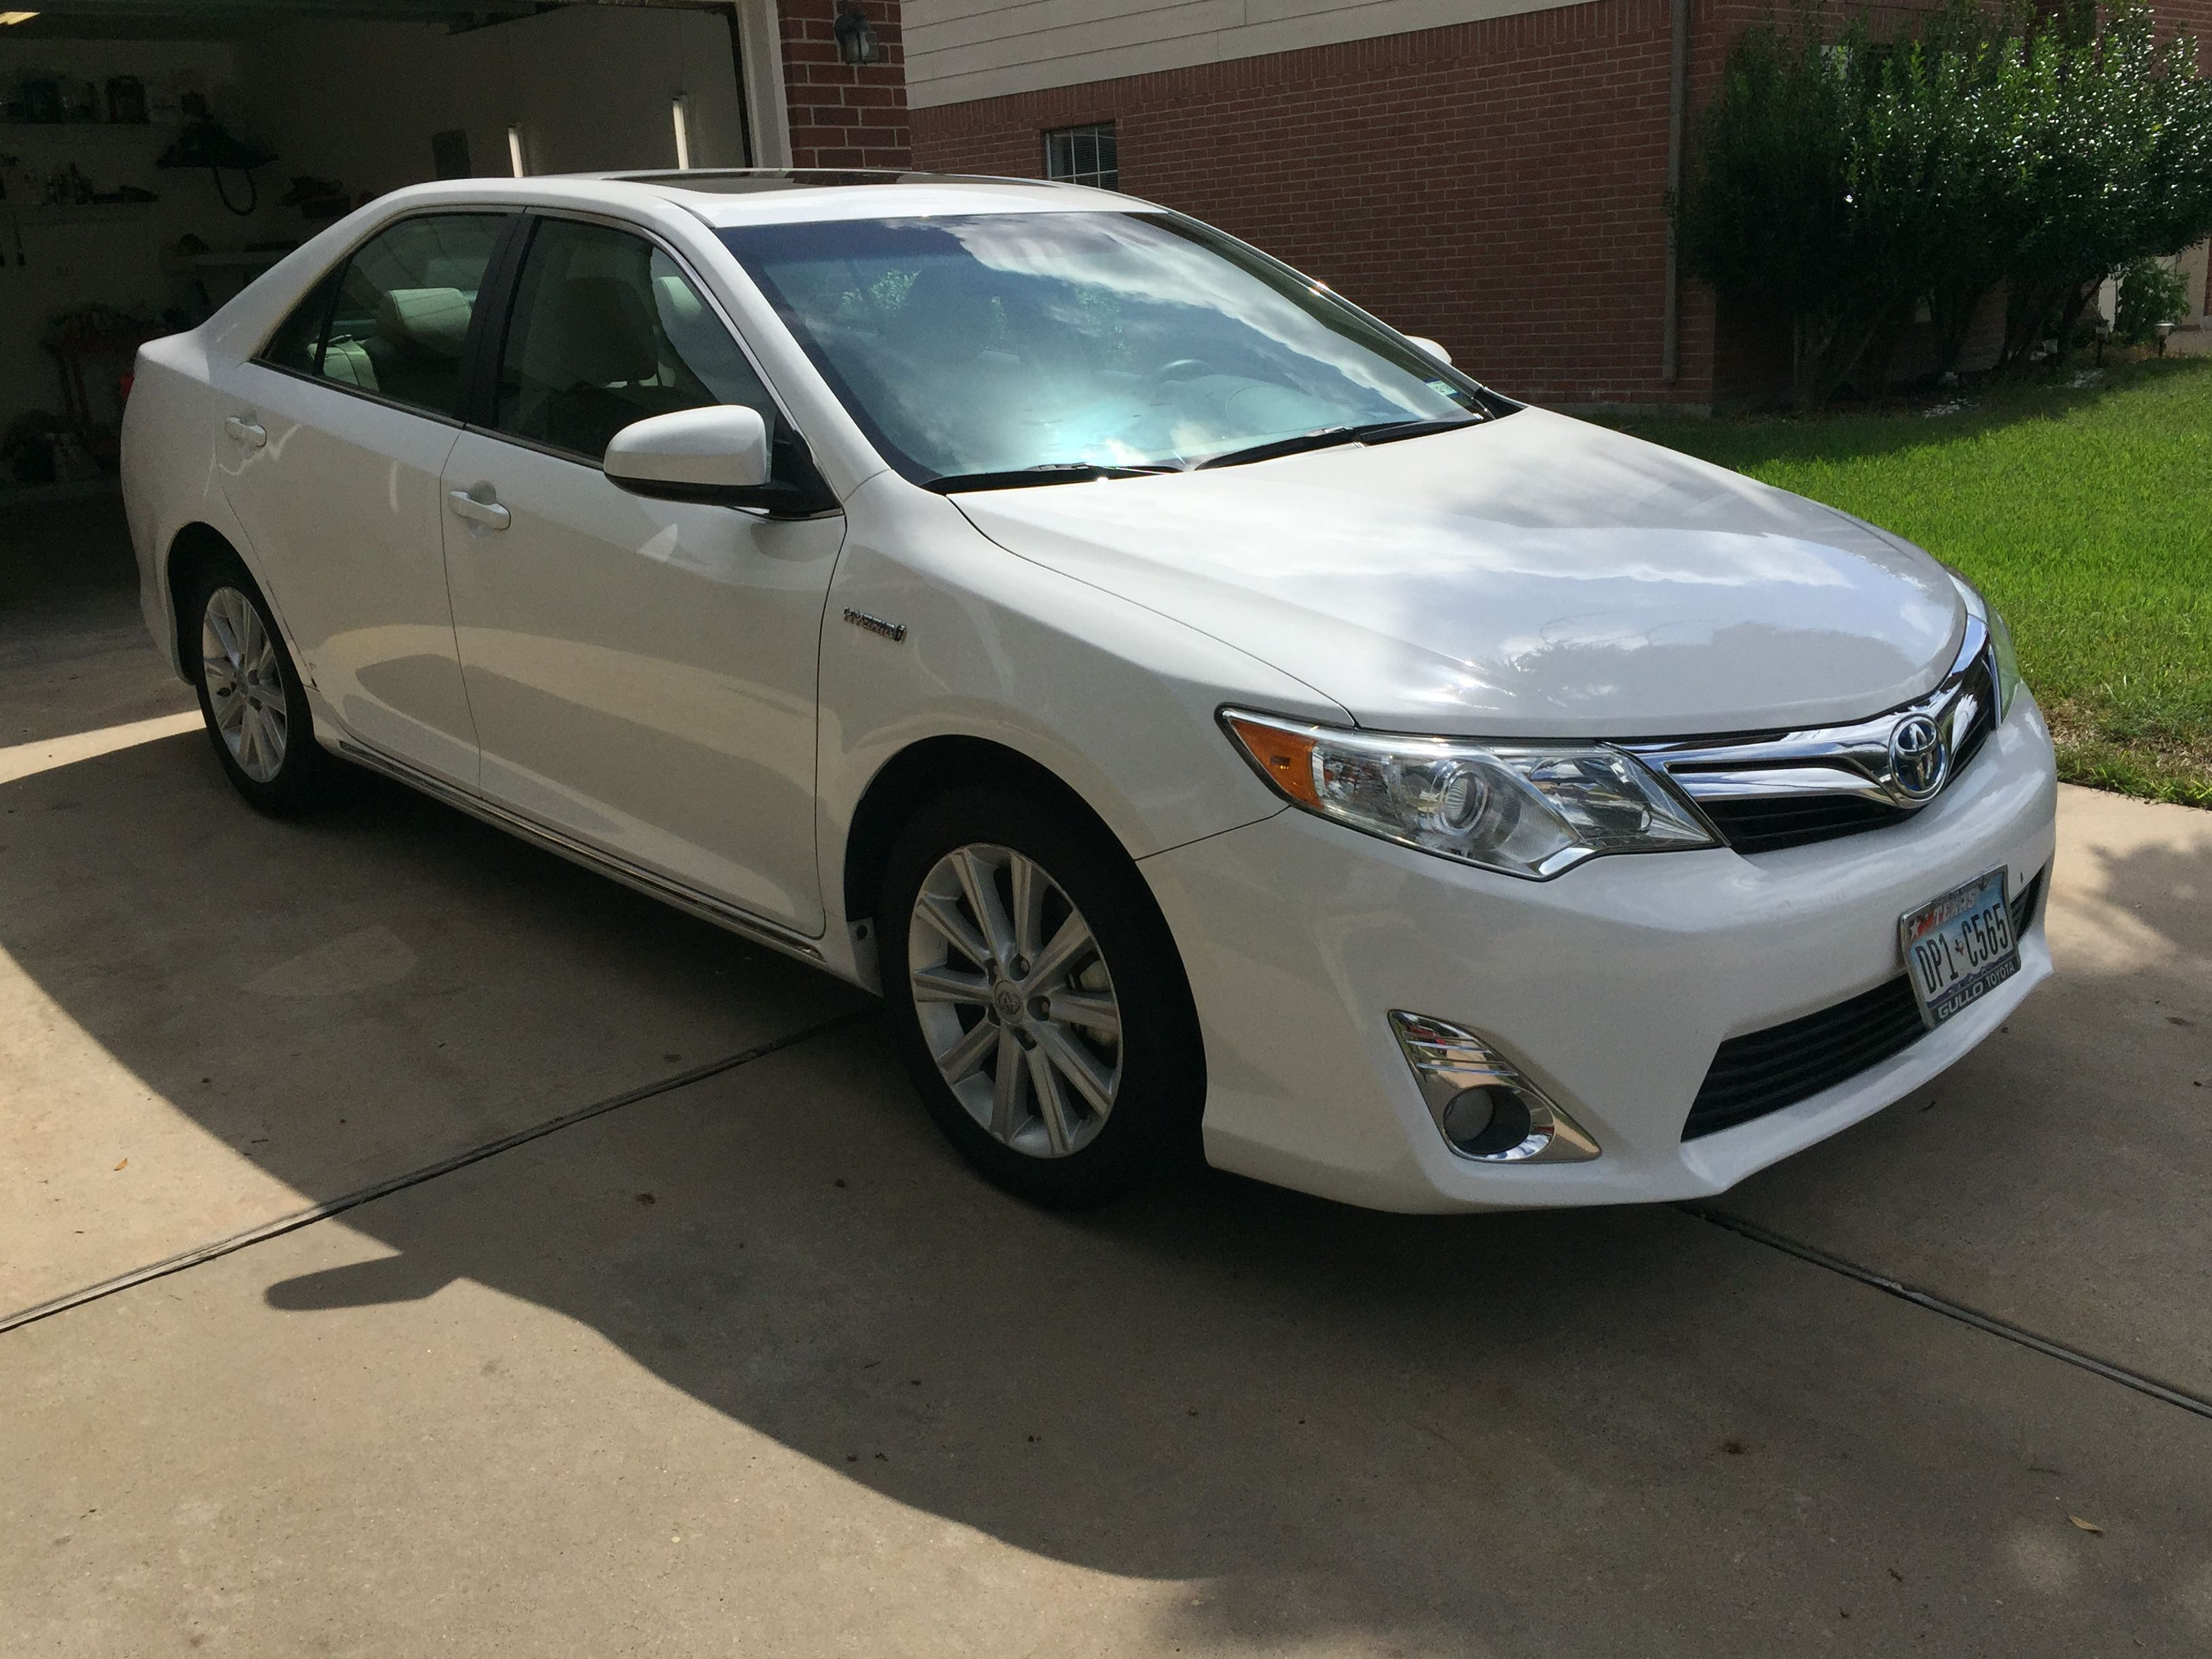 s for toyota houston used usautomobile corolla cars sale in tx